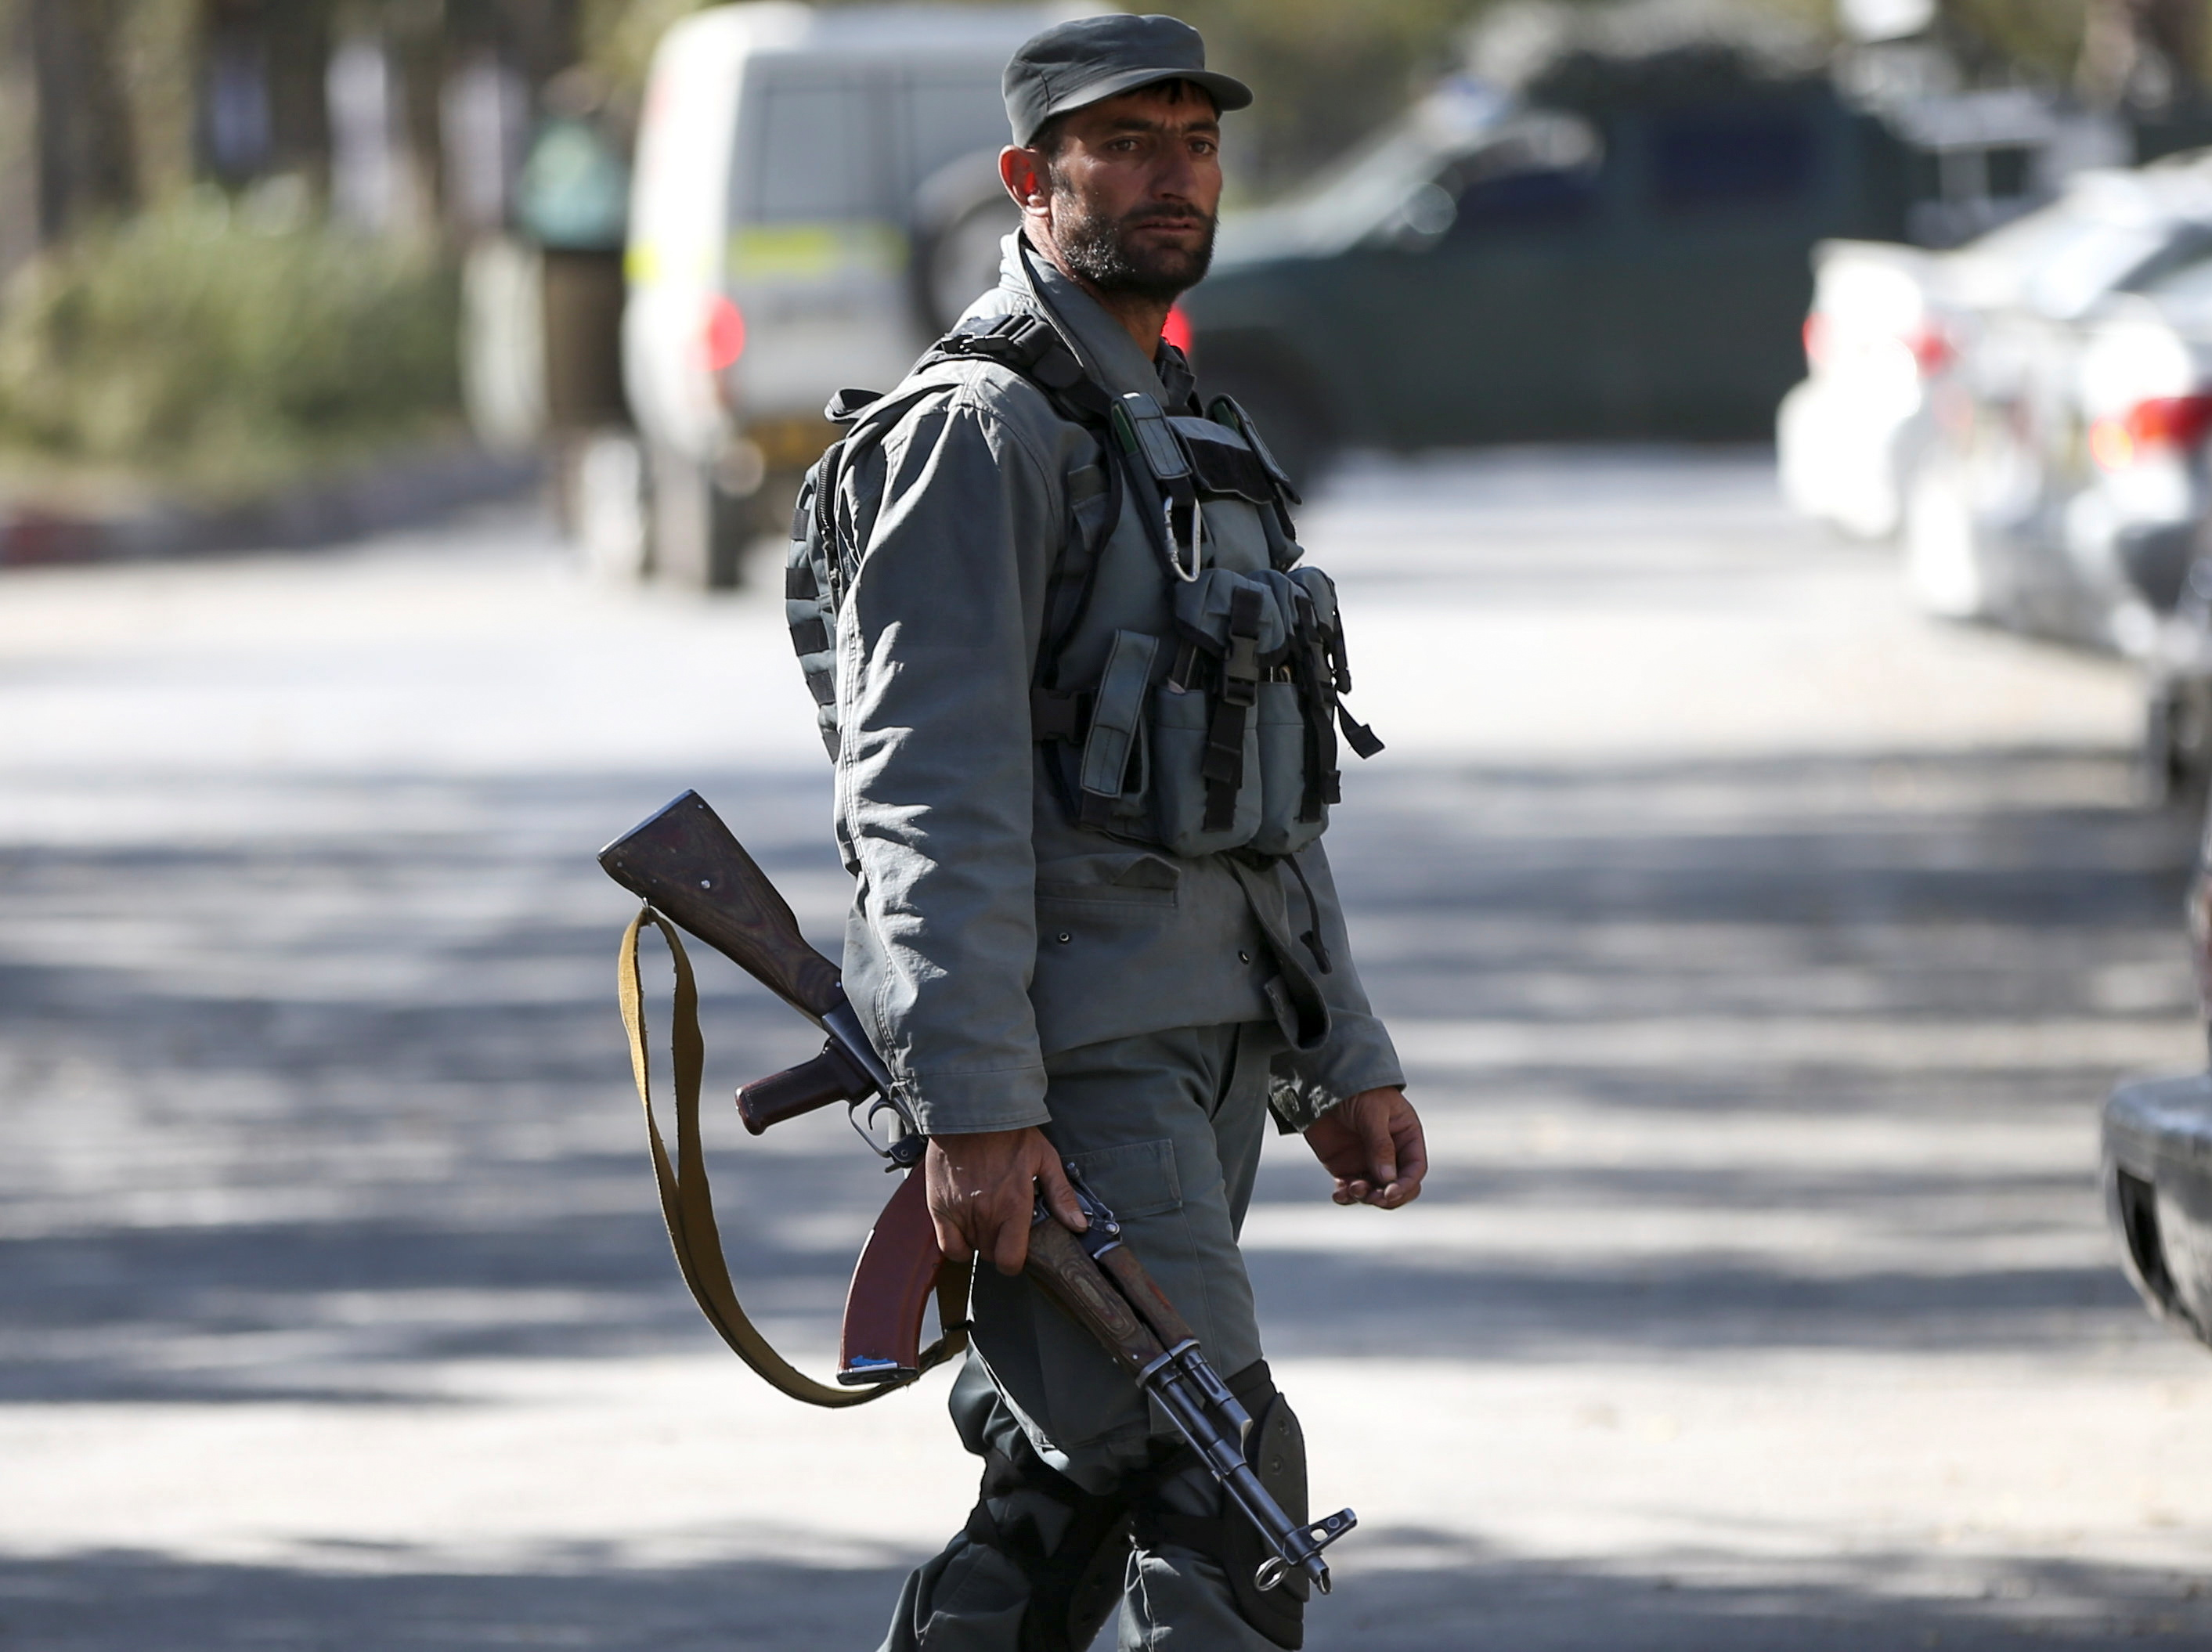 An Afghan policeman keeps watch near the site of an attack at the university of Kabul, Afghanistan November 2, 2020. REUTERS/Omar Sobhani